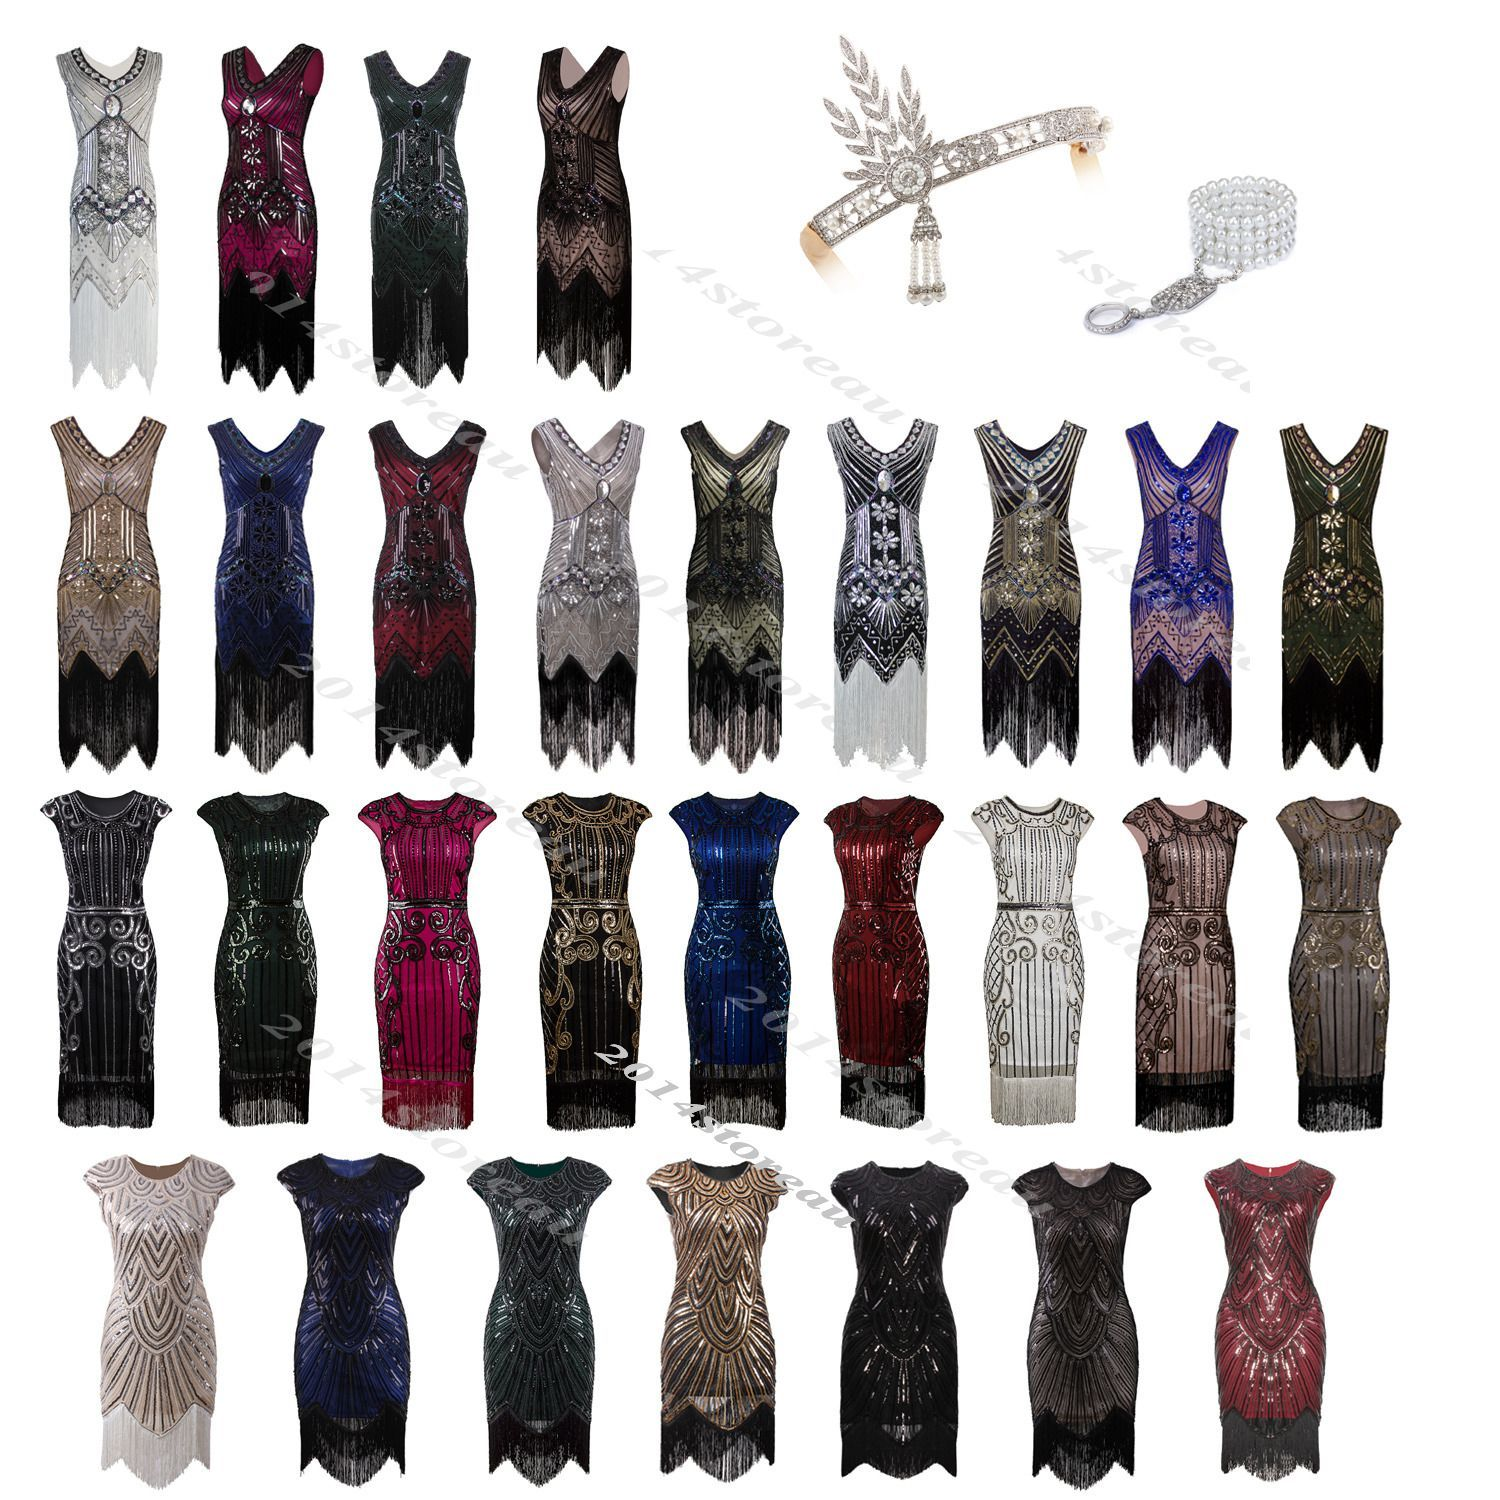 bec07f77 1930S 1920S Flapper Dress Gatsby Vintage Charleston Wedding Fringe Sequin  Party